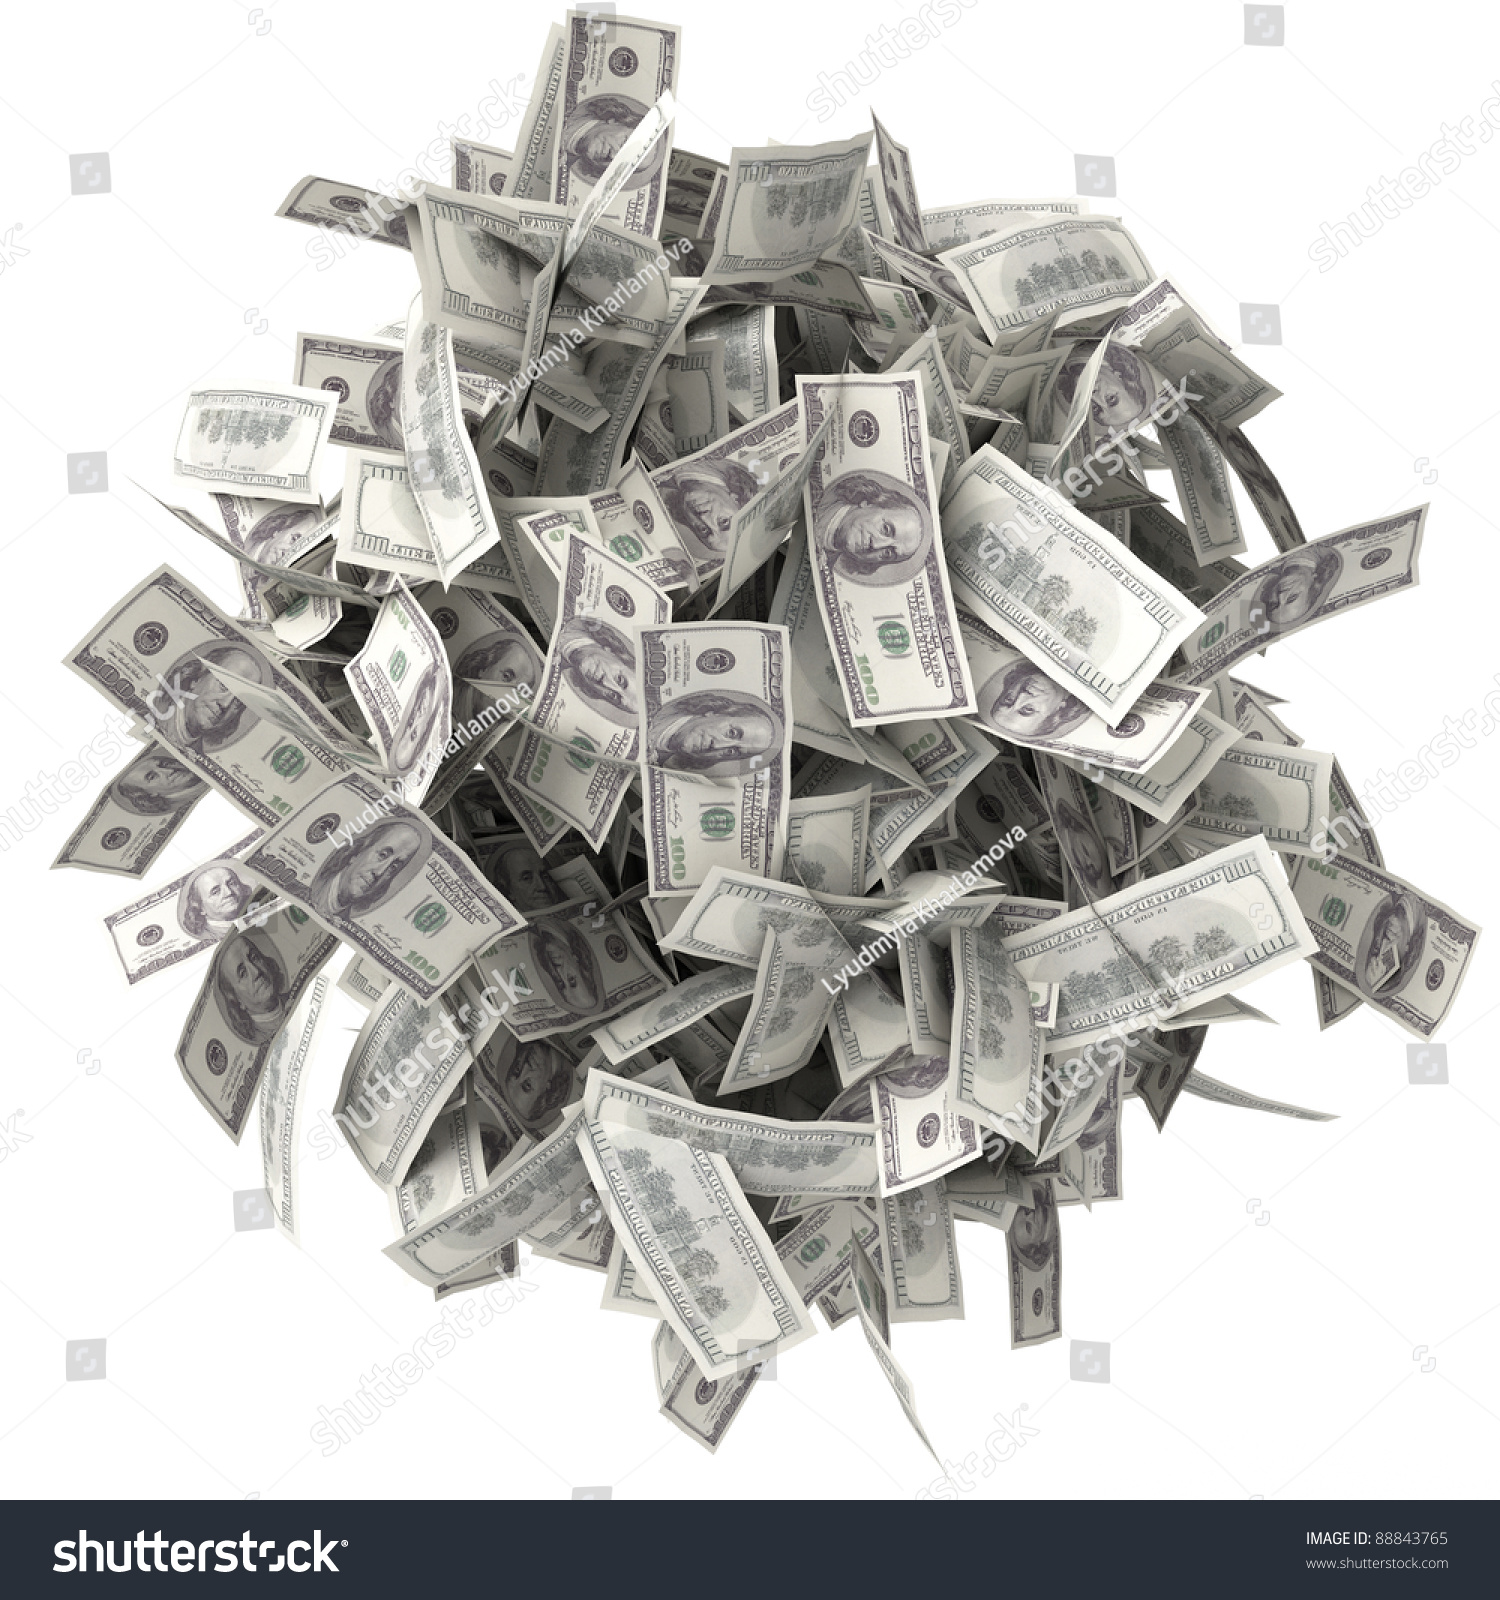 crumpled bills pile money ball notes stock illustration 88843765